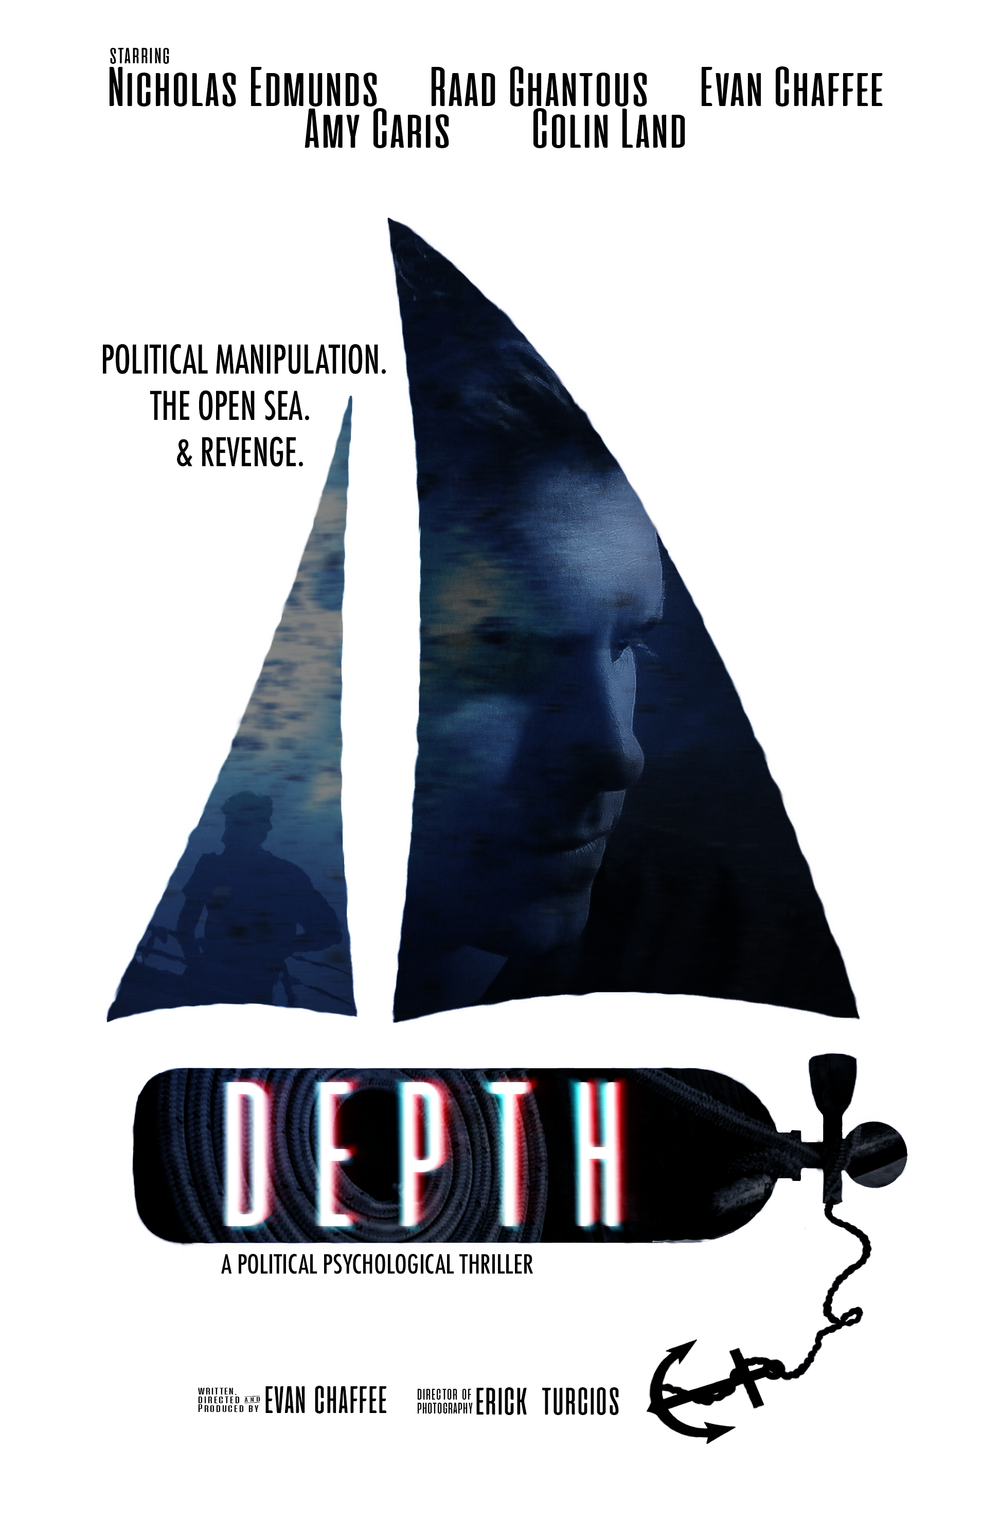 DEPTH - A Political Psychological Thriller